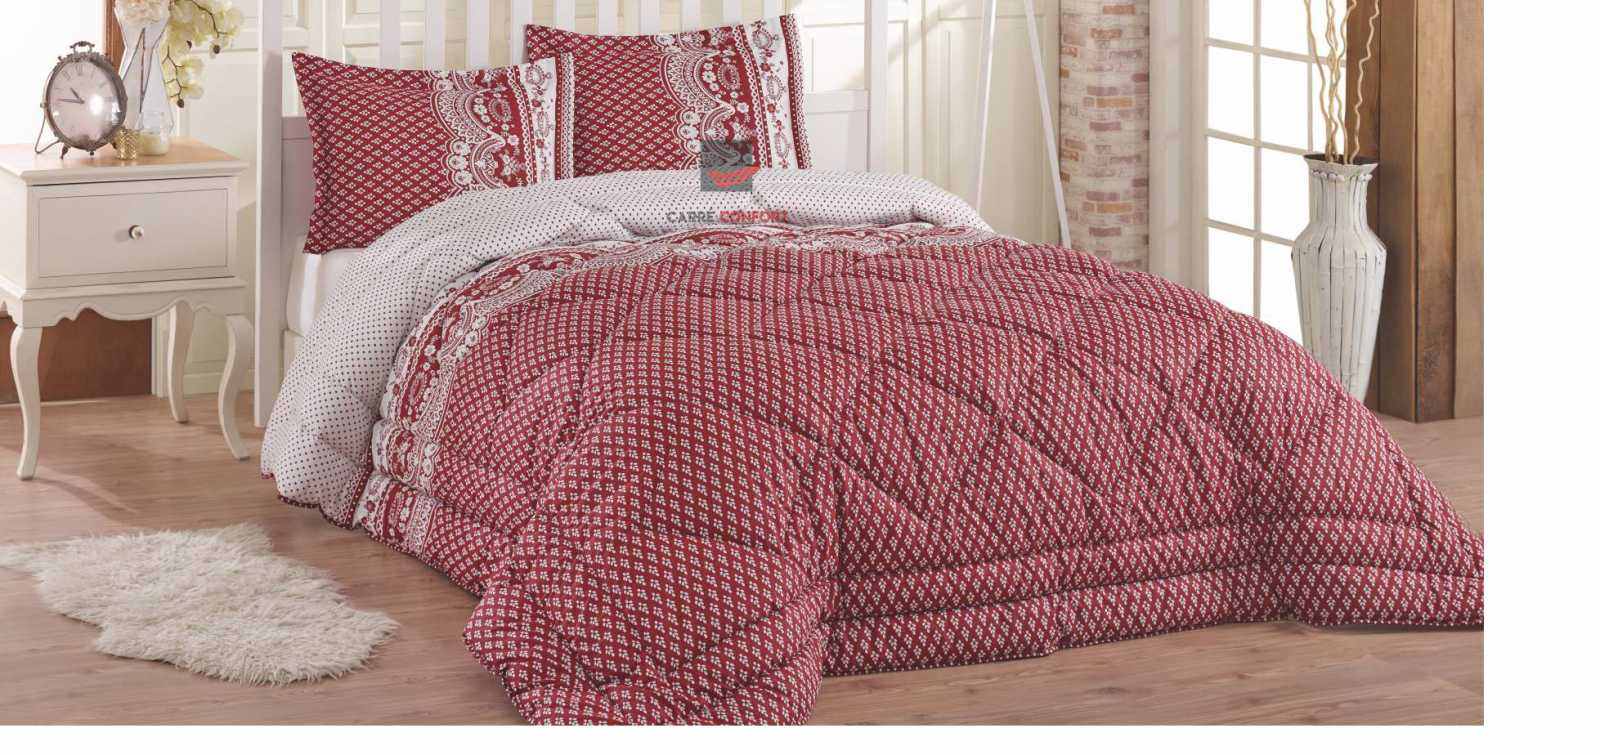 Couette Cotton Doux 2 Place Tilda Red 240x260